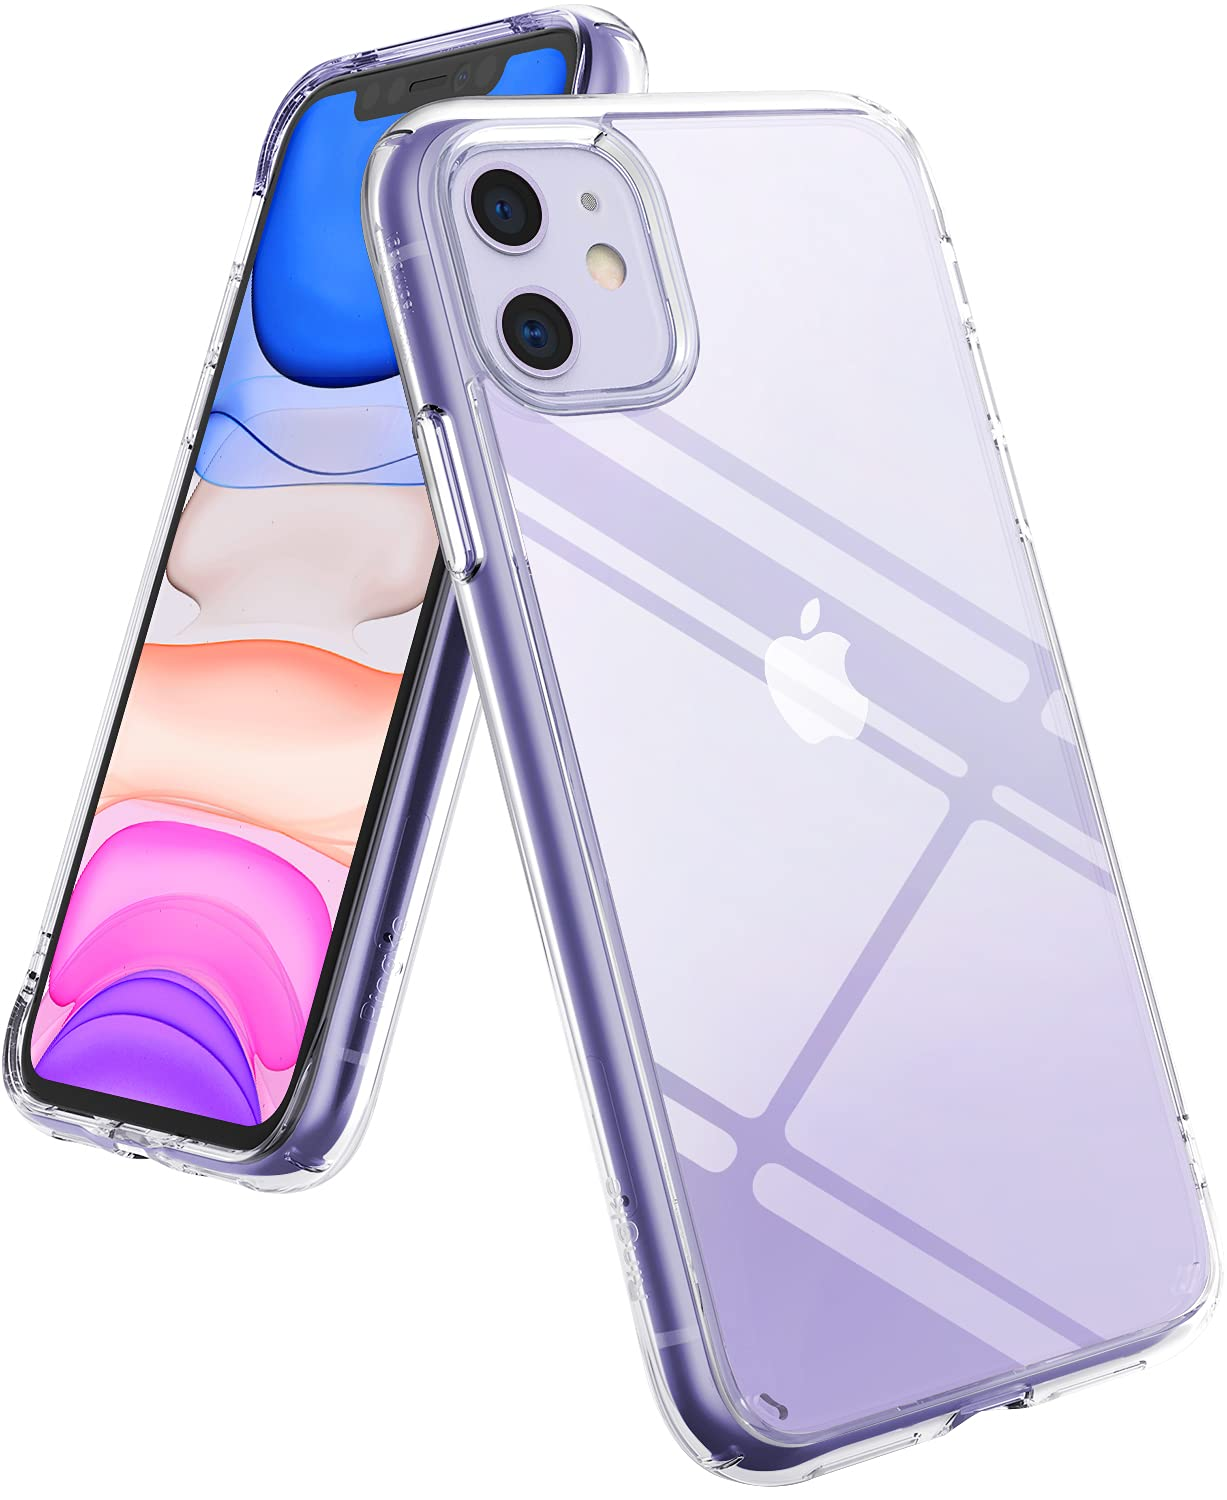 Ringke Fusion Designed for iPhone 11 Case, Clear Hard Back PC Shockproof TPU Bumper Phone Cover Case for iPhone 11 6.1-Inch (2019) - Transparent